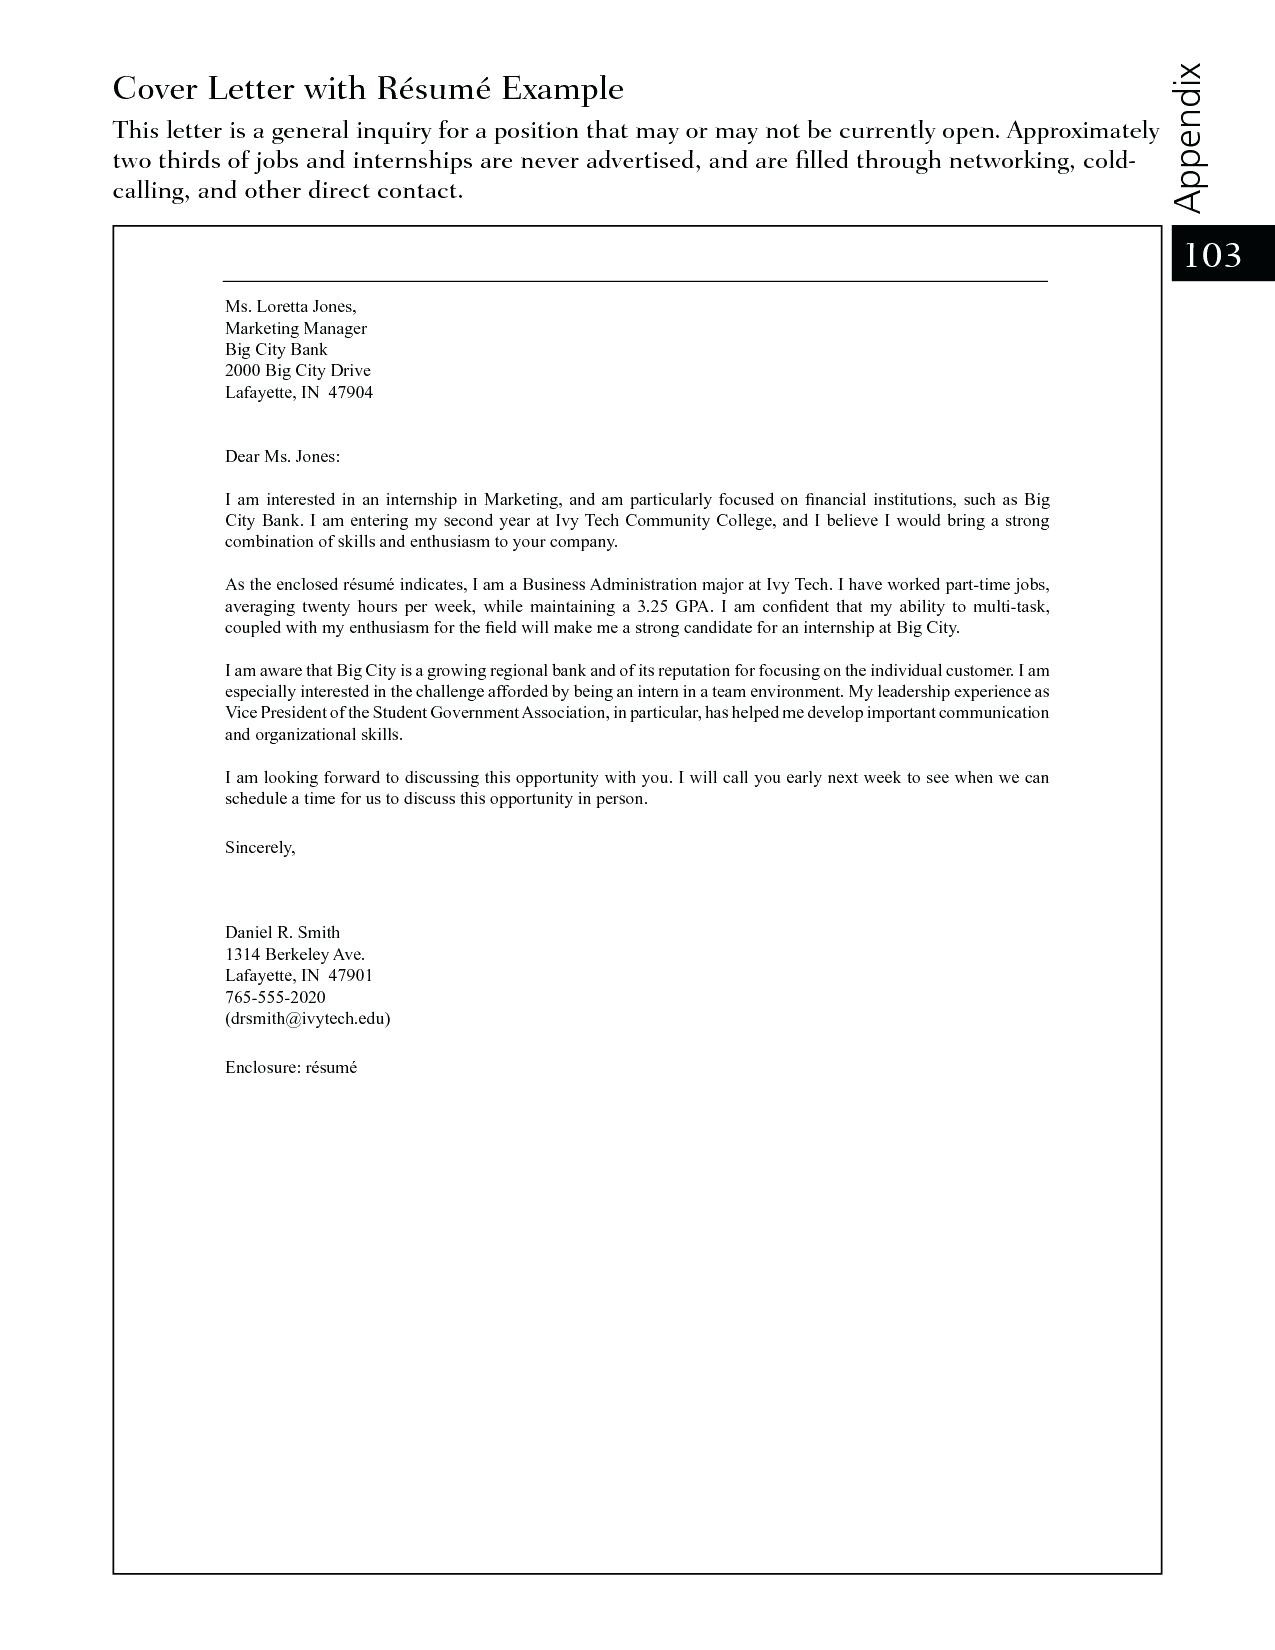 General Cover Letter Template